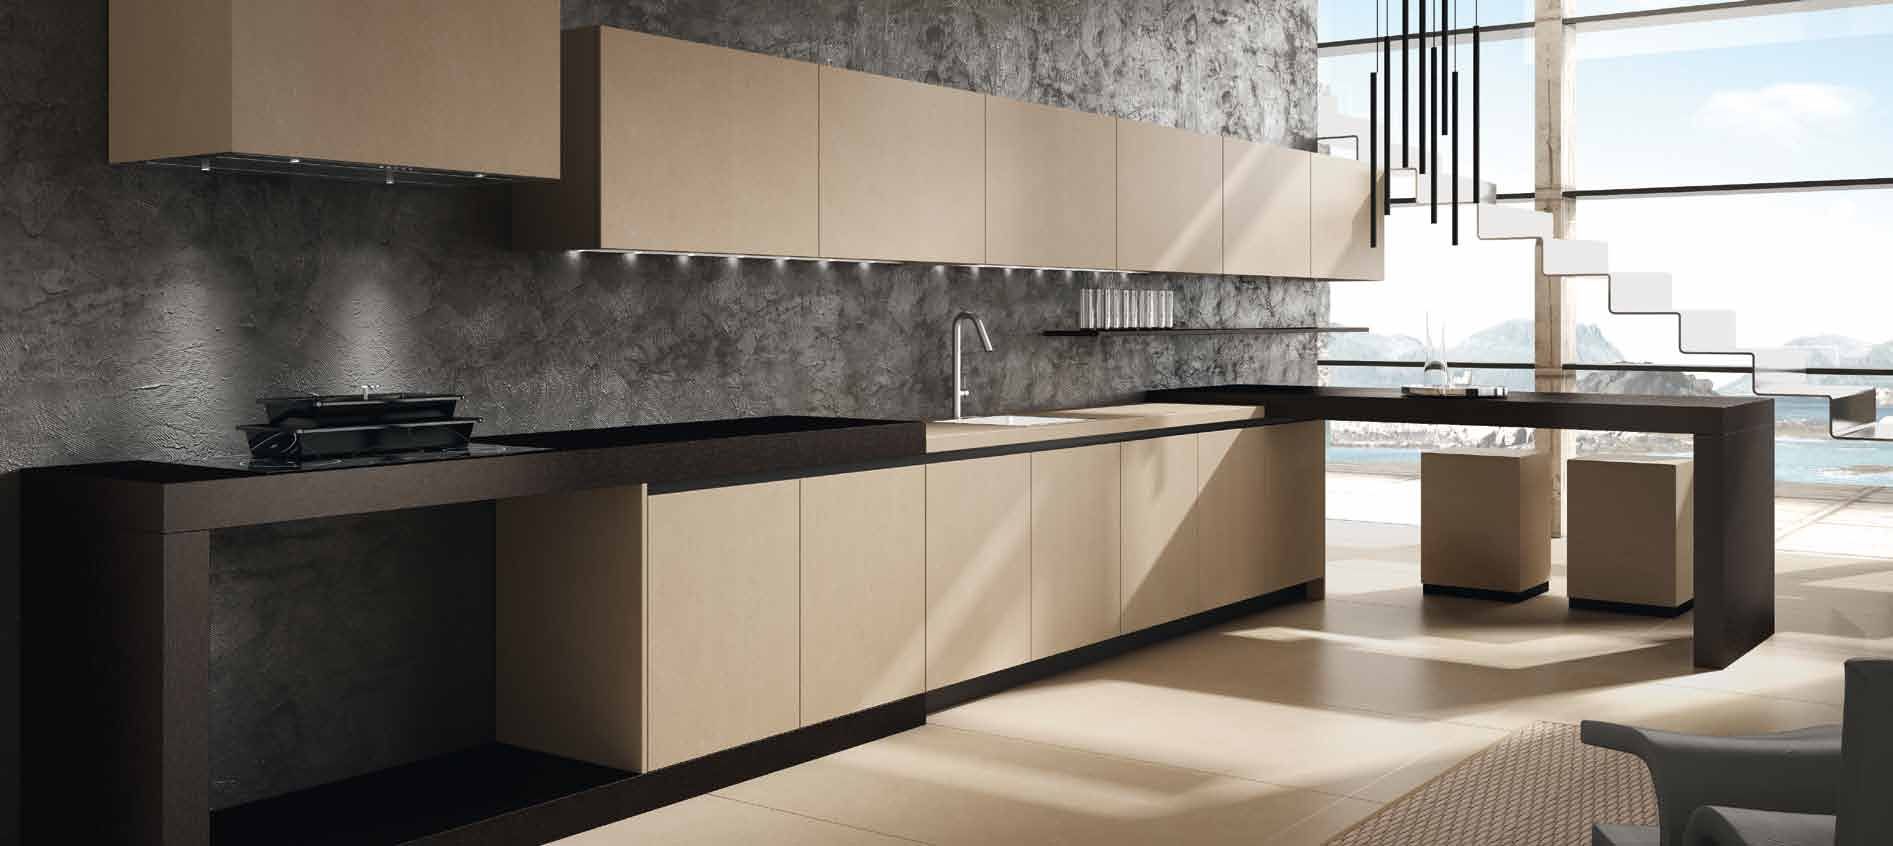 Beautiful Prezzi Cucine Arrital Pictures - Ideas & Design 2017 ...